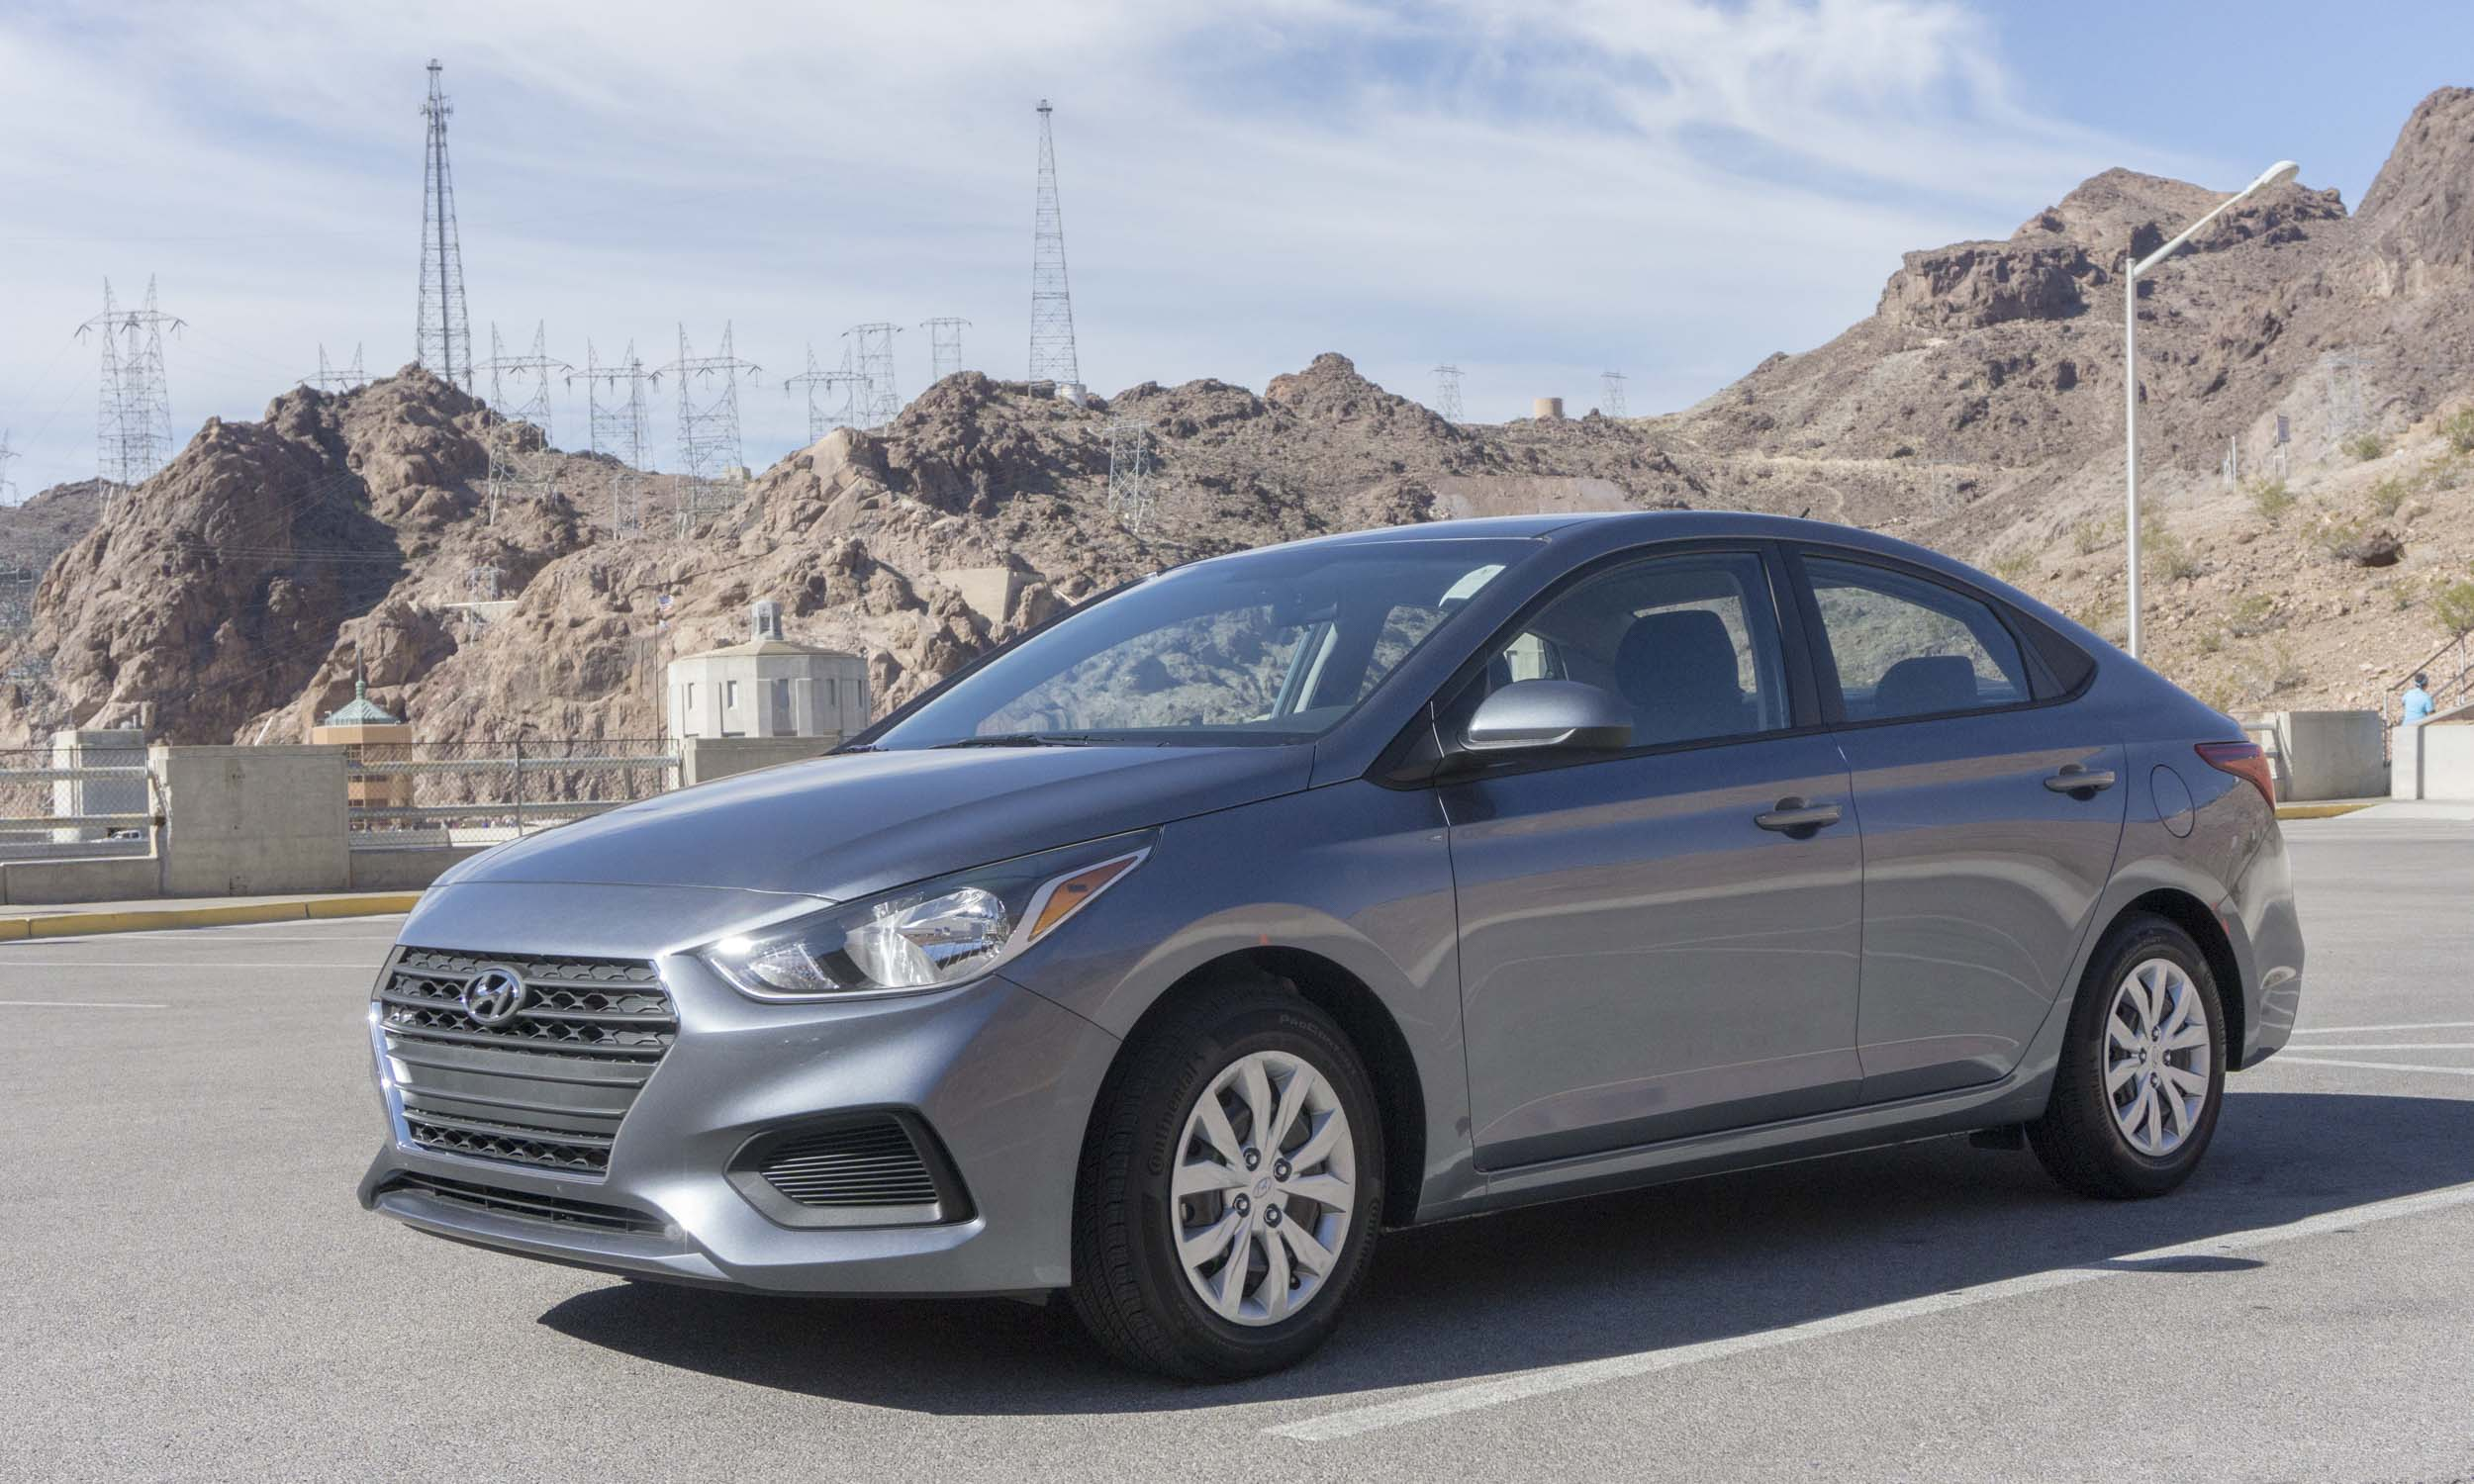 Hyundai Accent Hatchback 2017 Review >> 2018 Hyundai Accent: First Drive Review - » AutoNXT